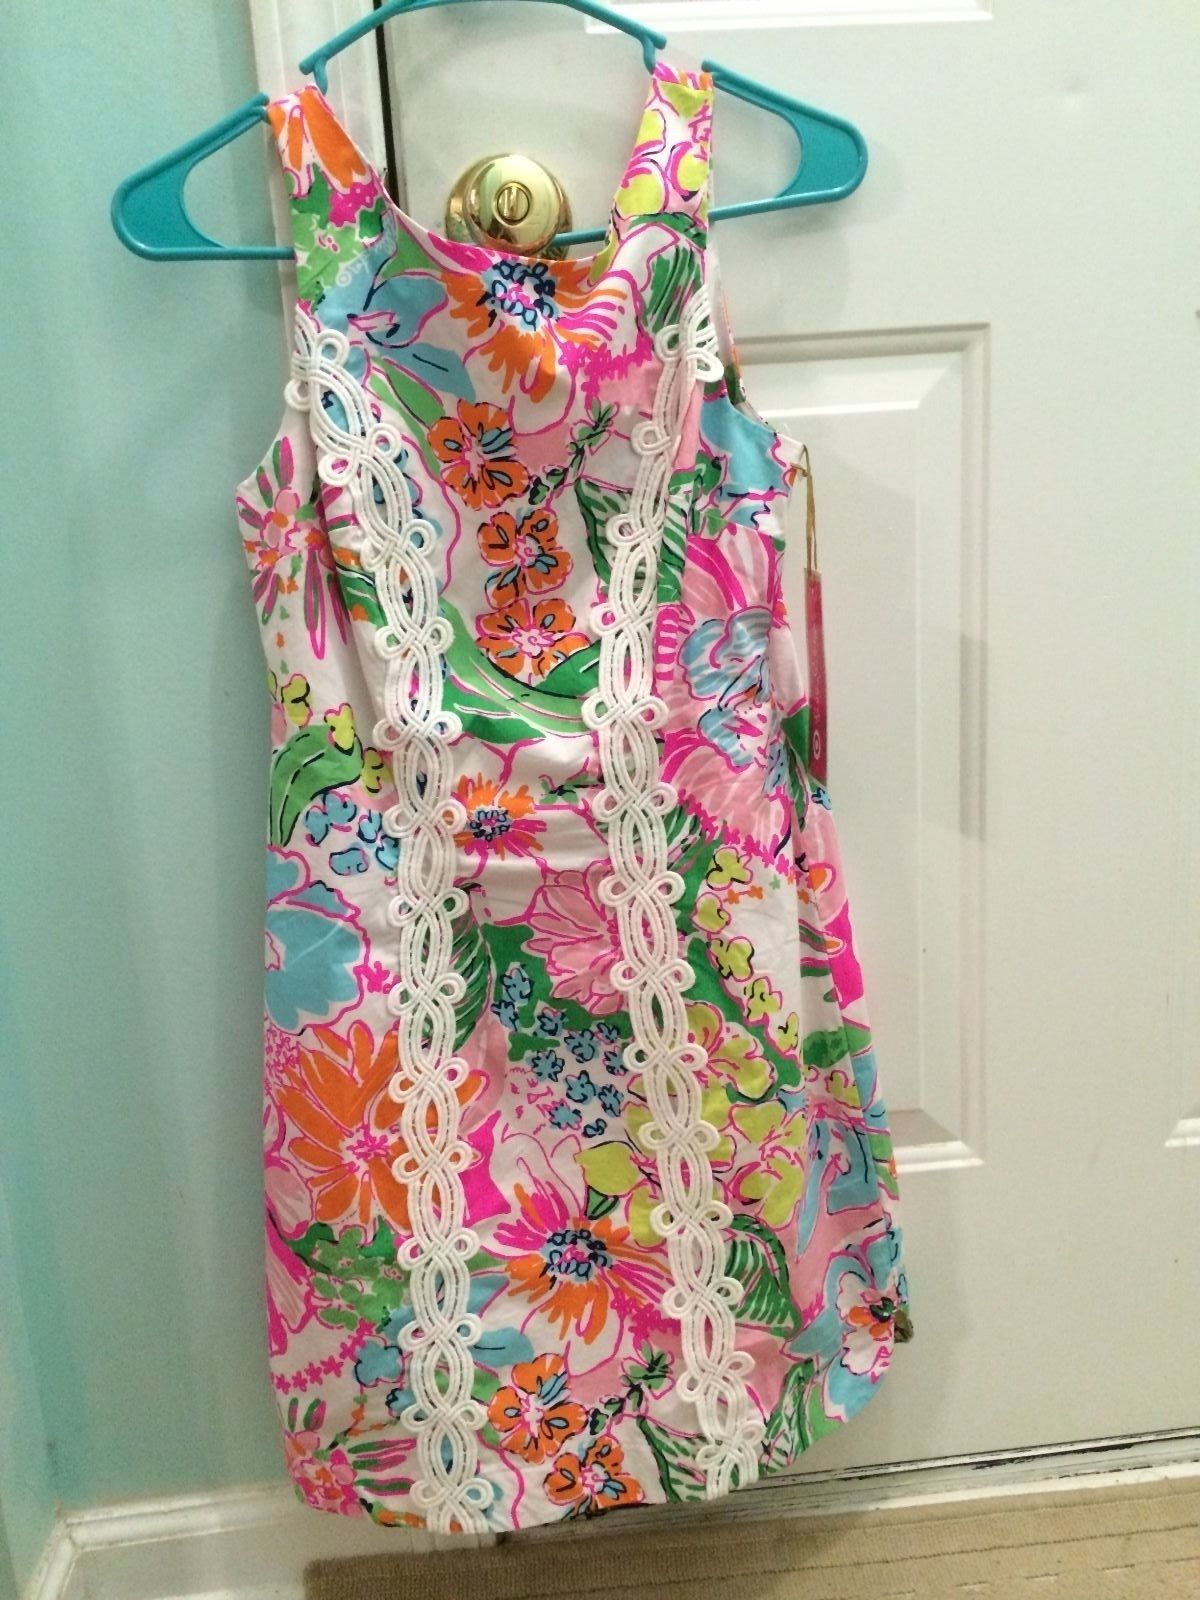 d27be2a2c8 Lilly Pulitzer for Target Nosie Posey Shift Dress Size 2